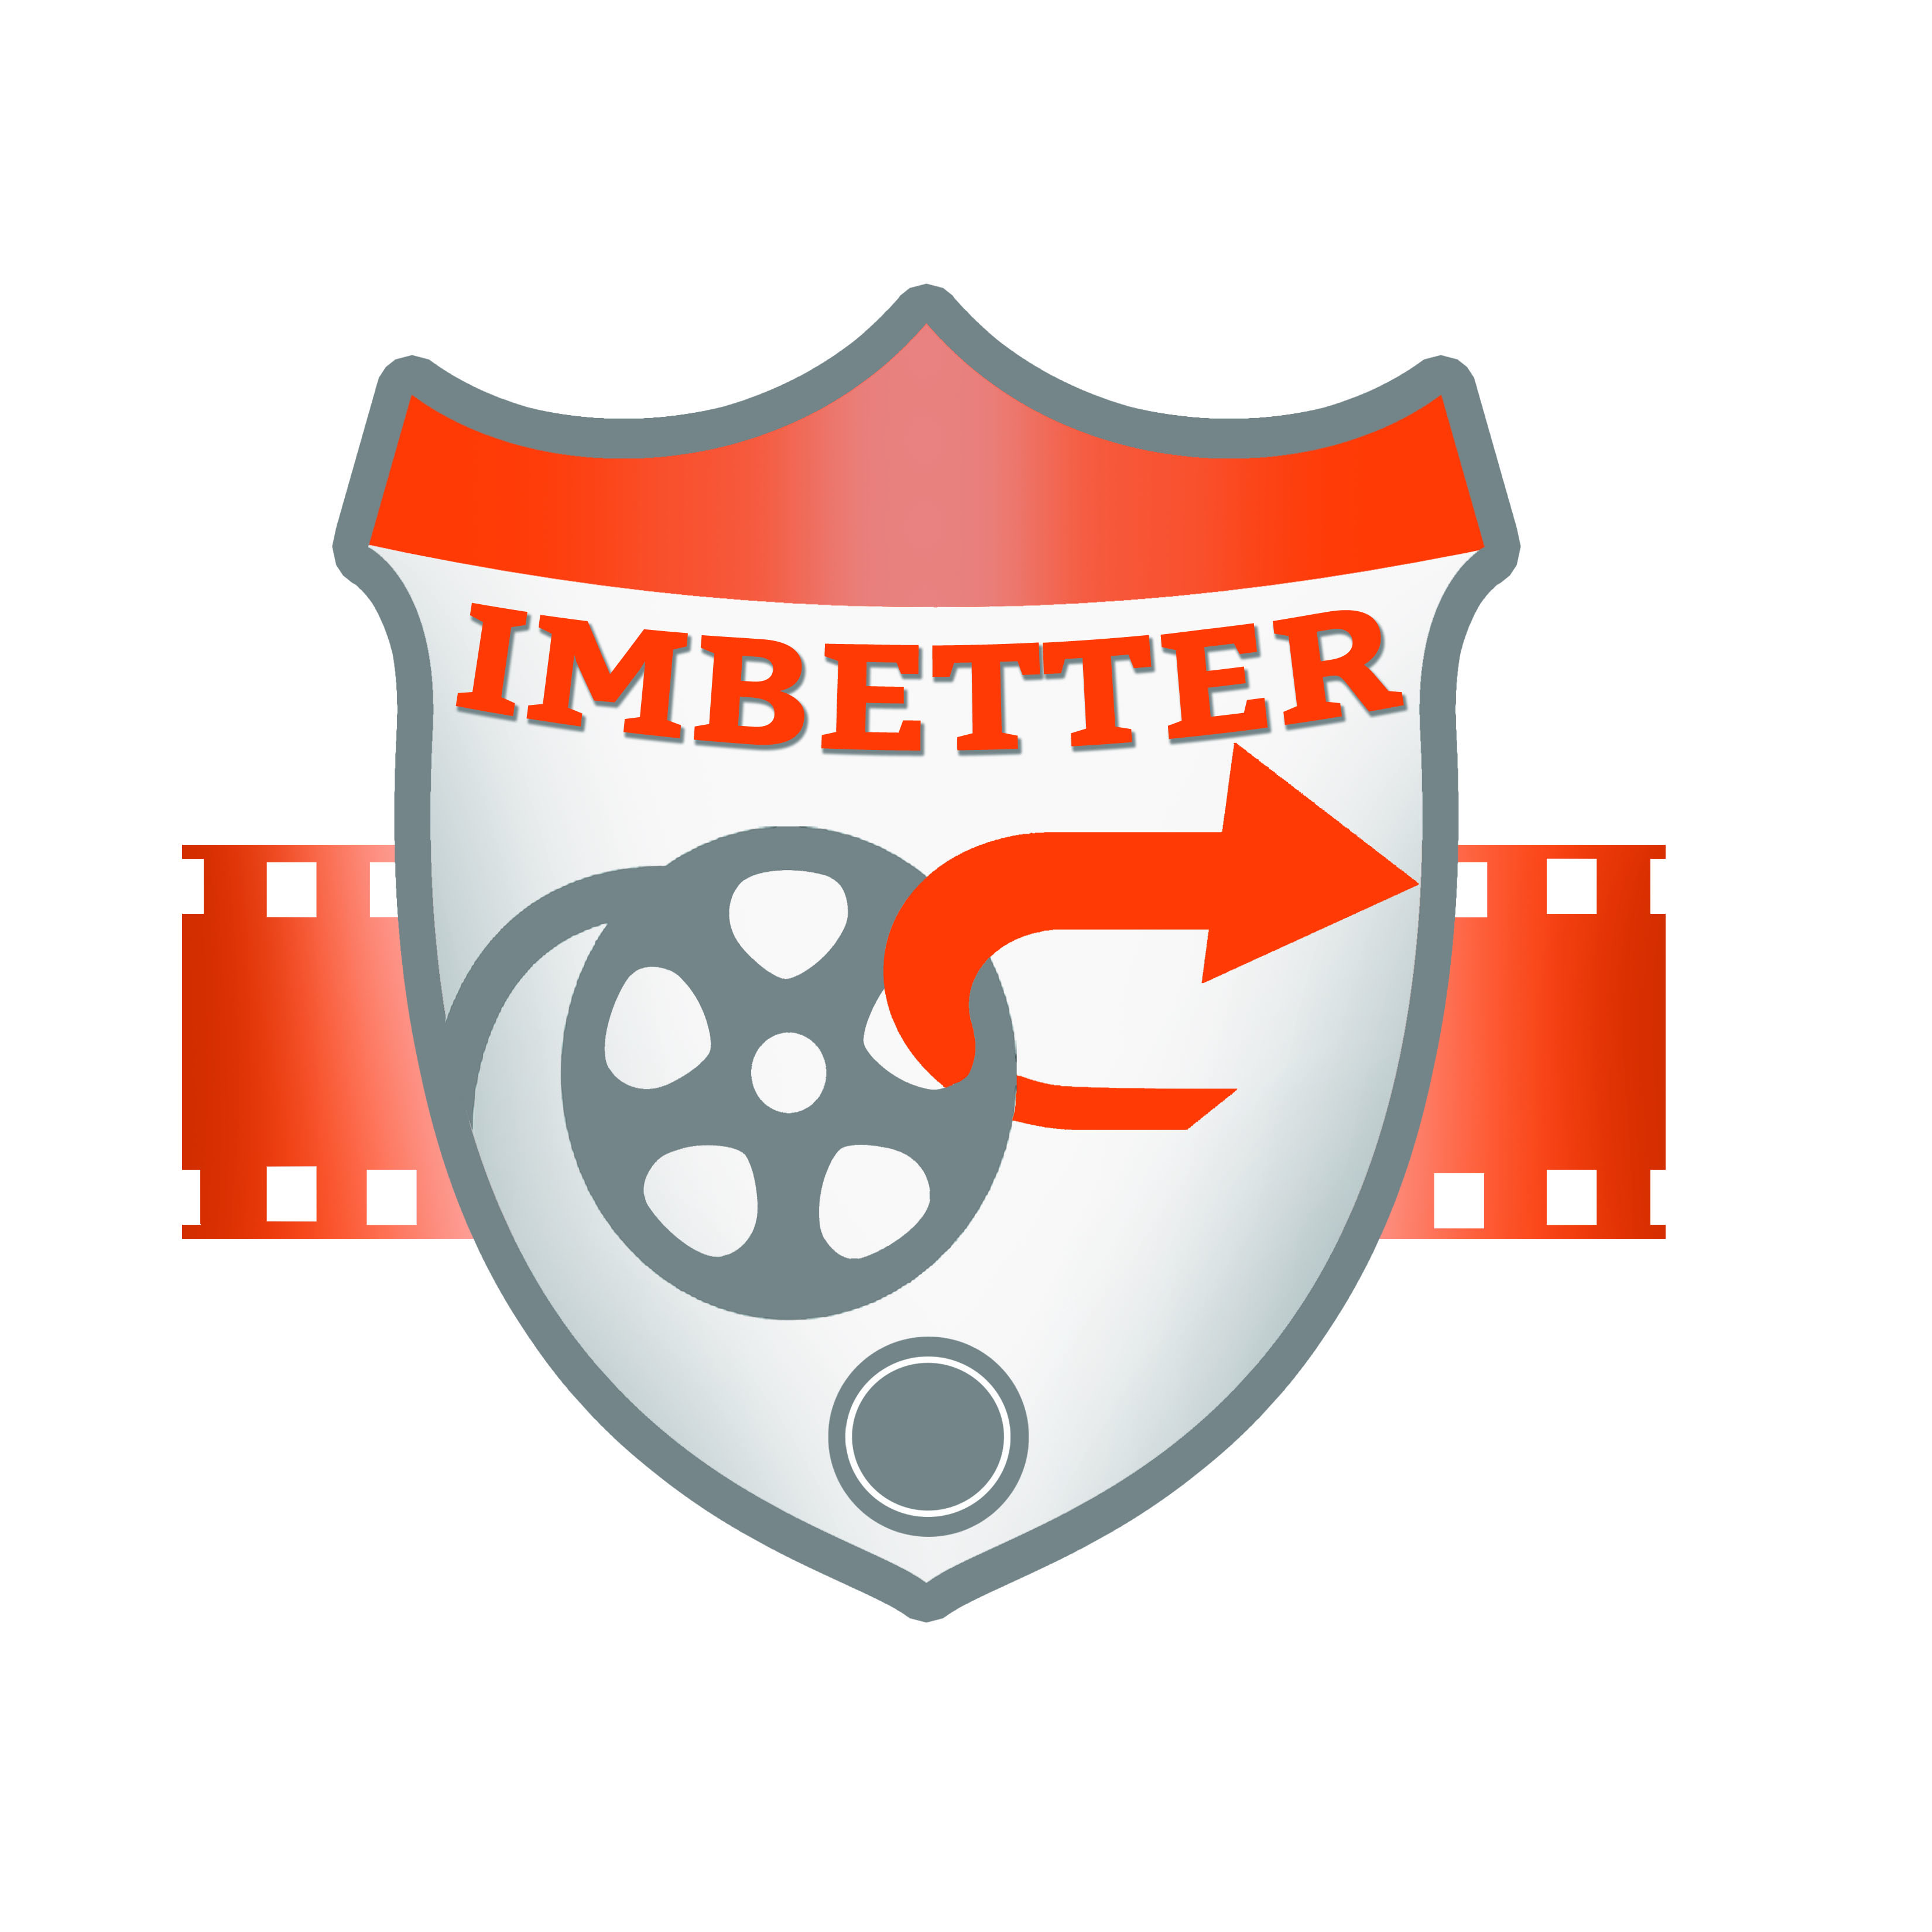 Logo Design by Alan Esclamado - Entry No. 10 in the Logo Design Contest Imaginative Logo Design for imbetter.